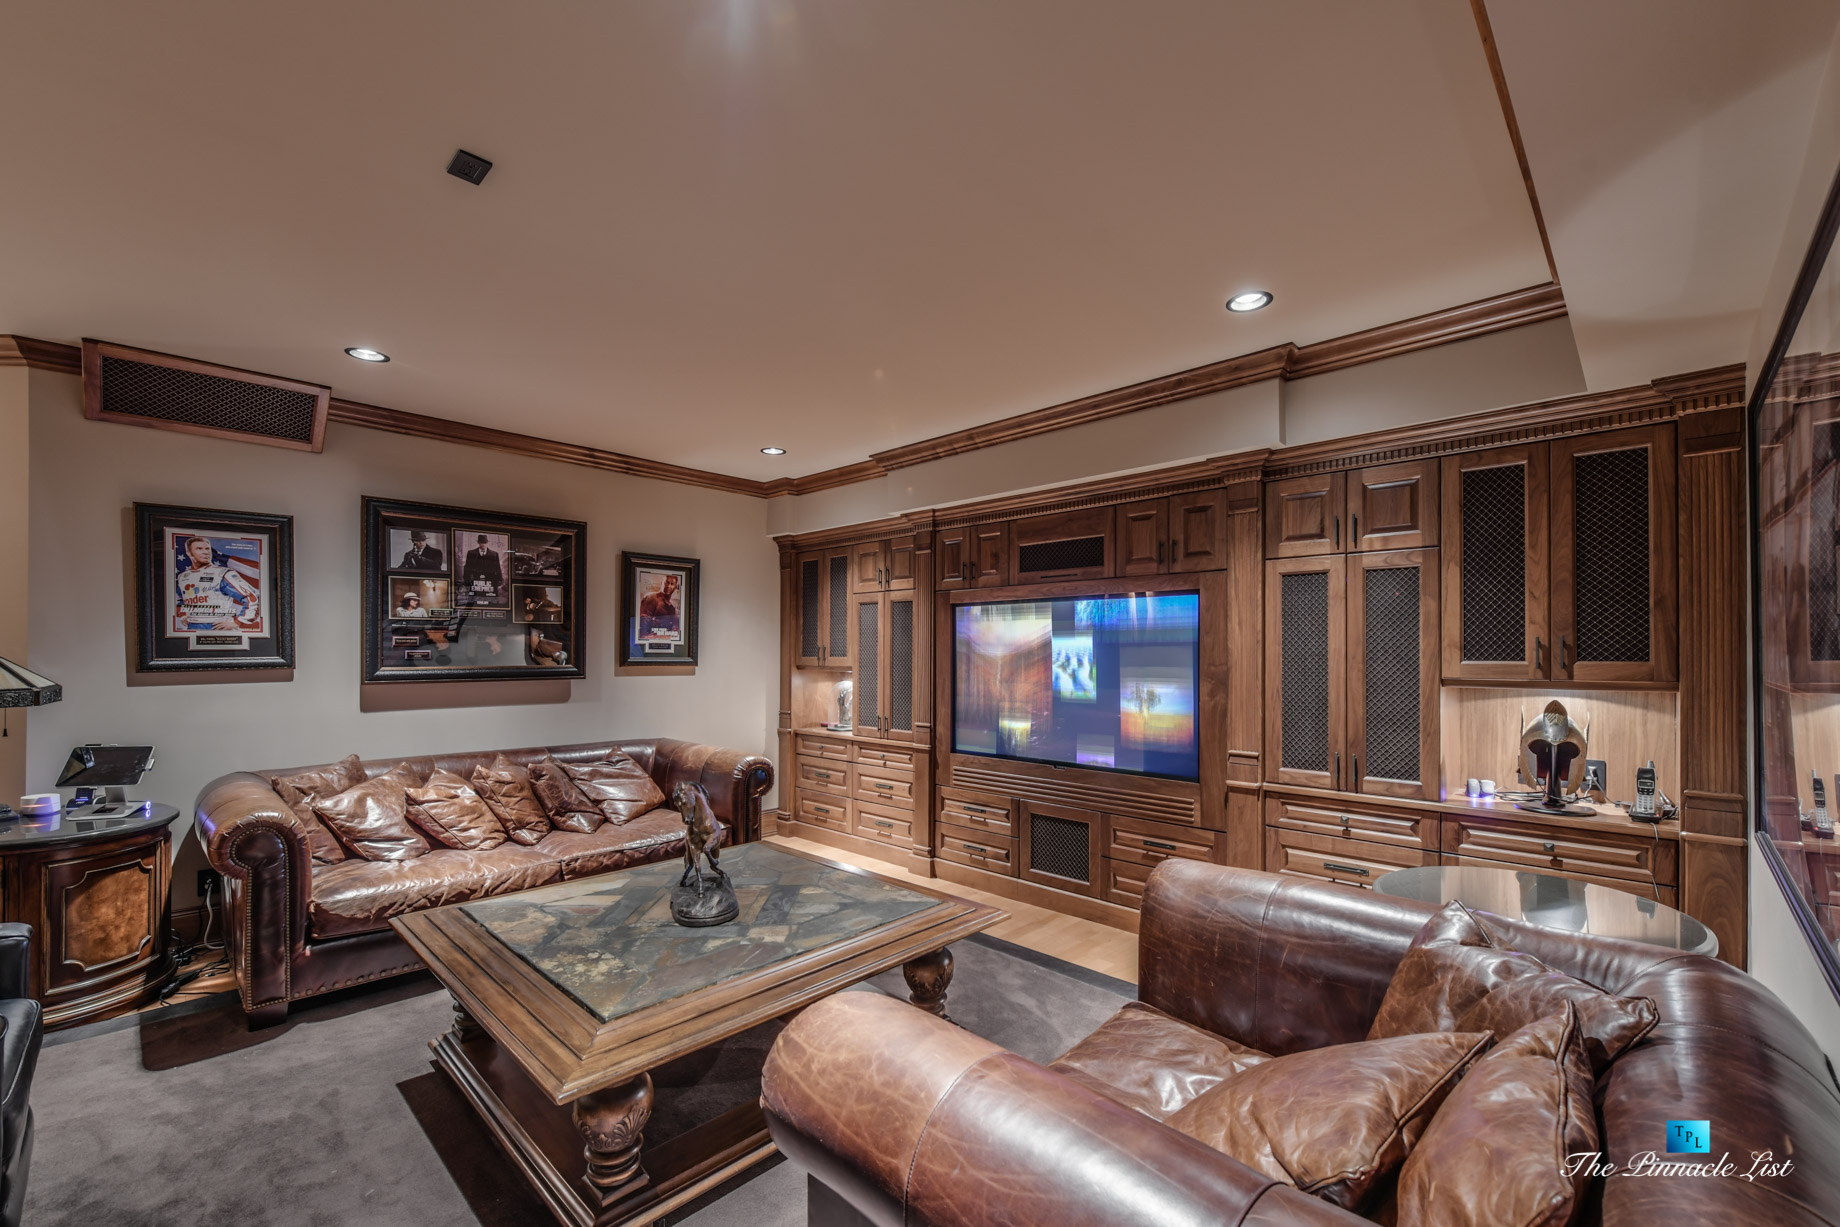 3053 Anmore Creek Way, Anmore, BC, Canada - Basement Man Cave Theatre - Luxury Real Estate - Greater Vancouver Home